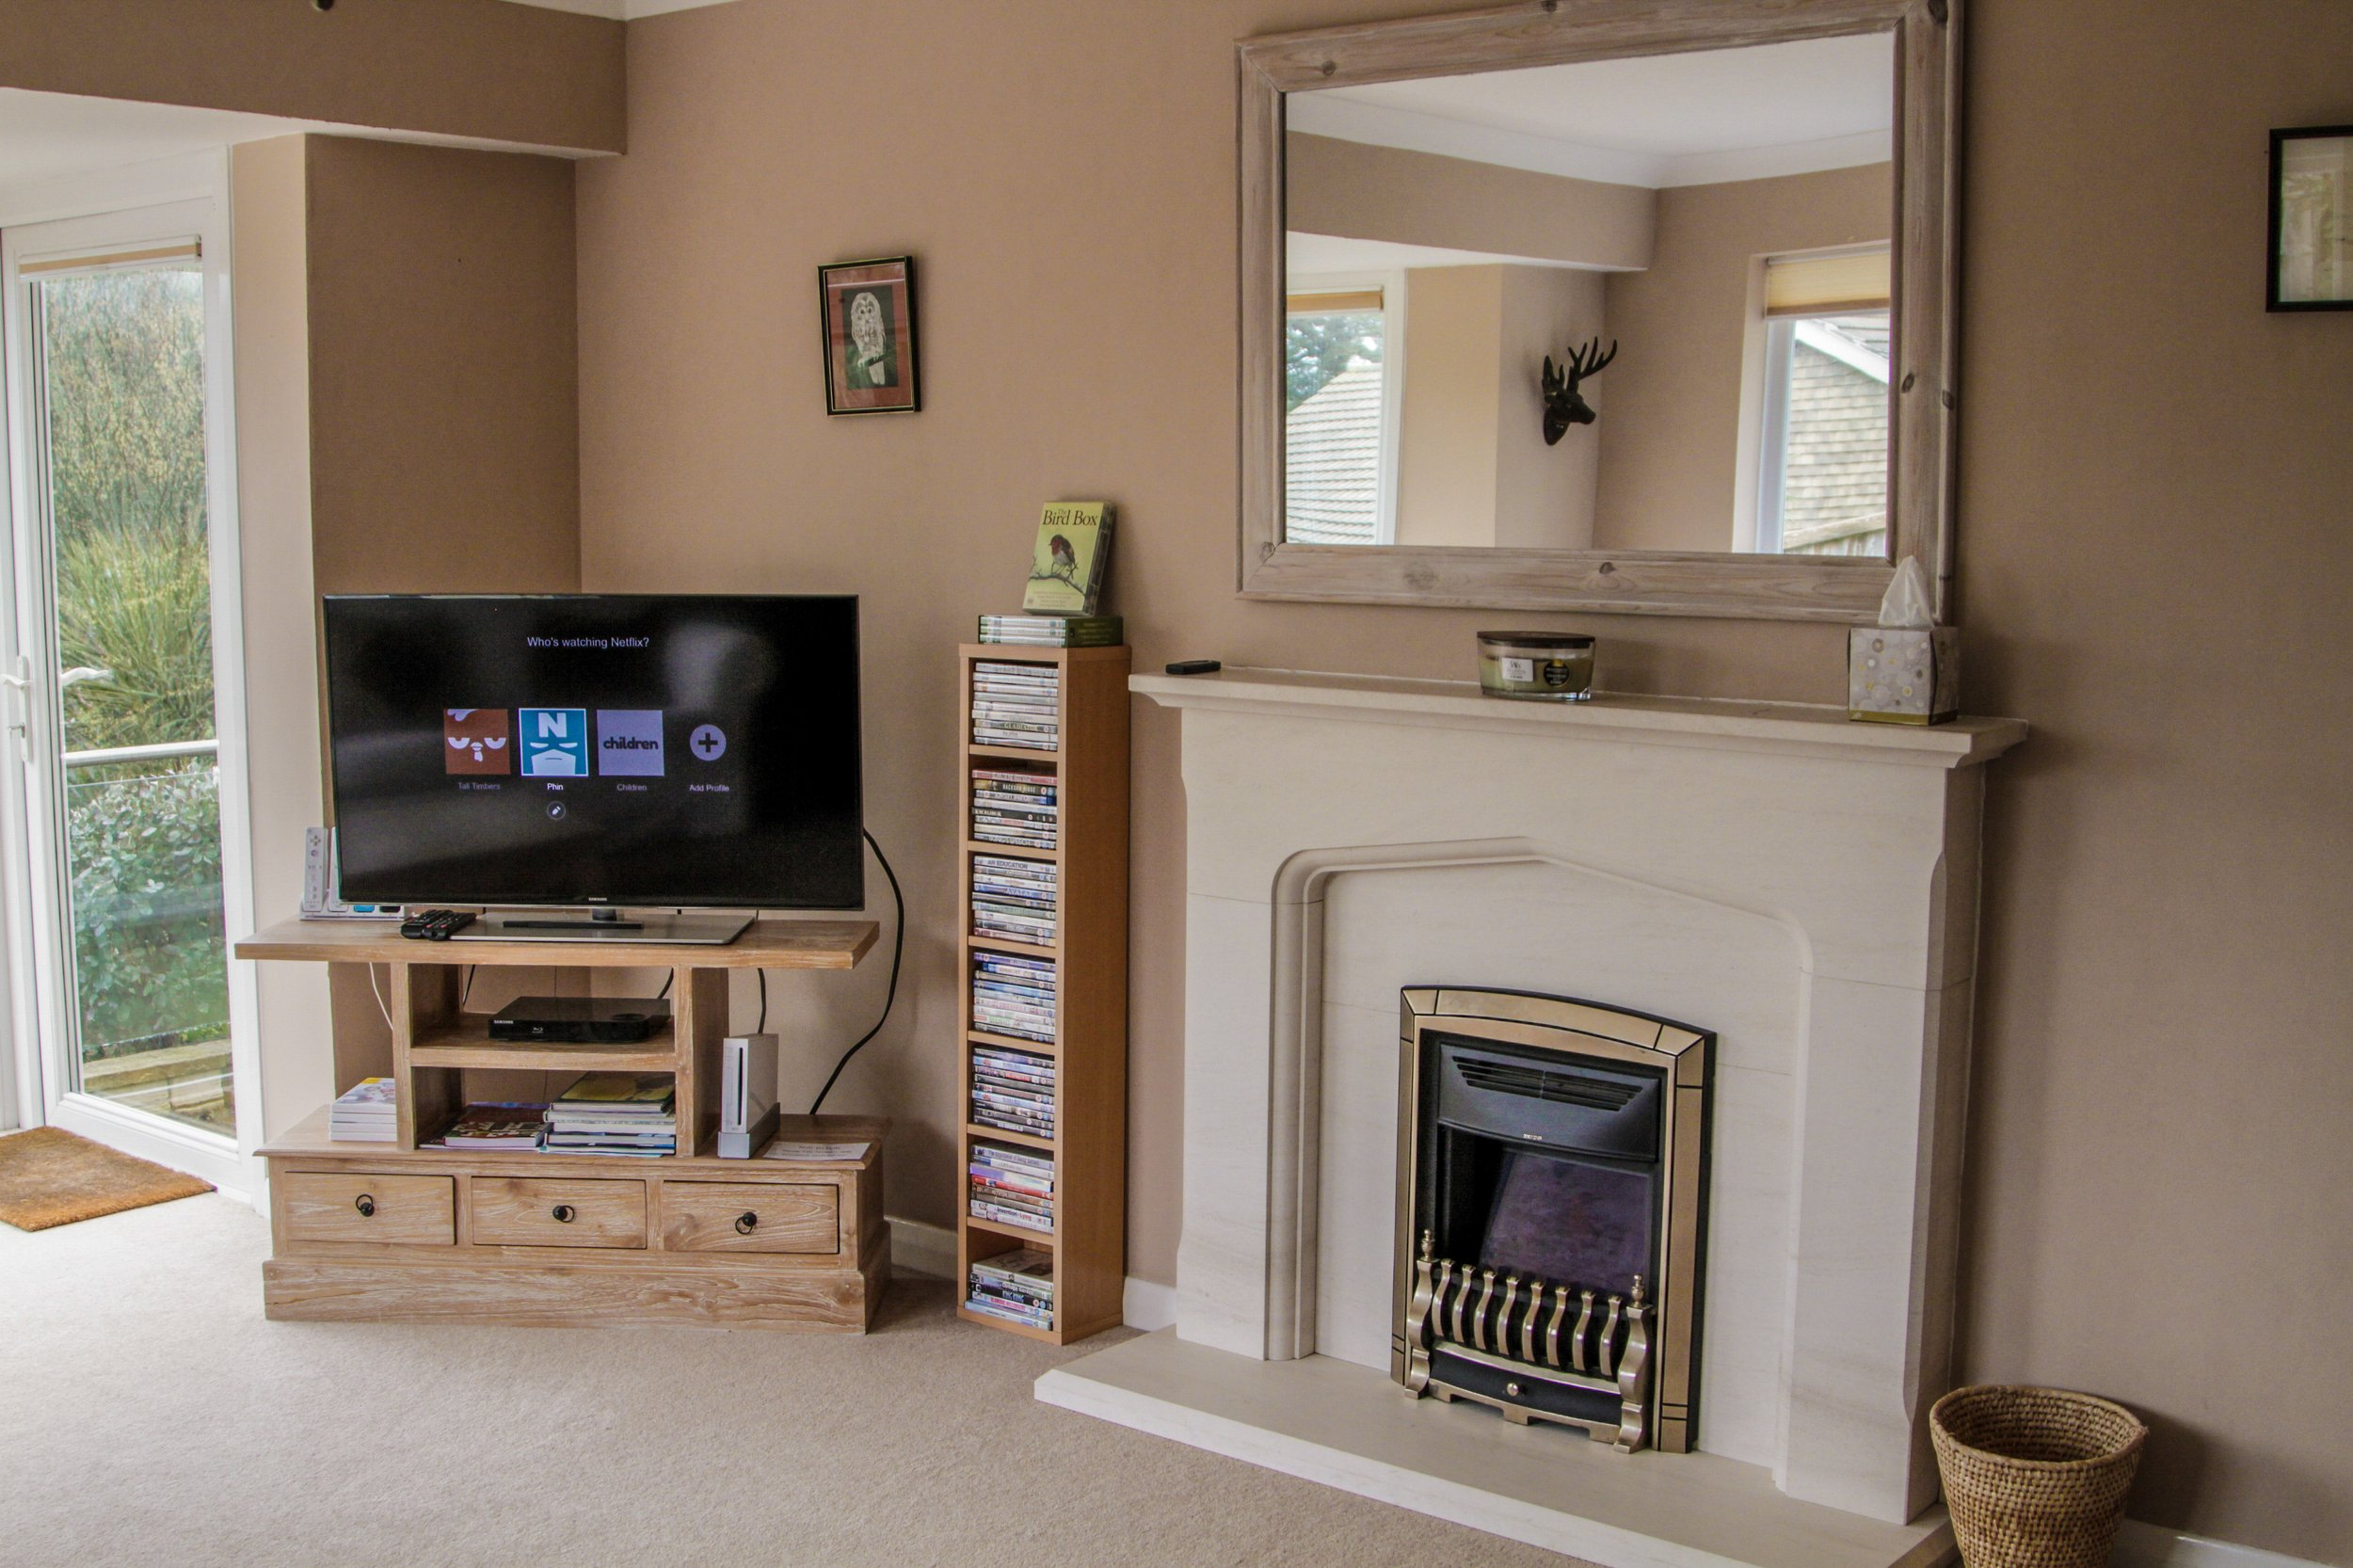 Lounge 'fire' and TV